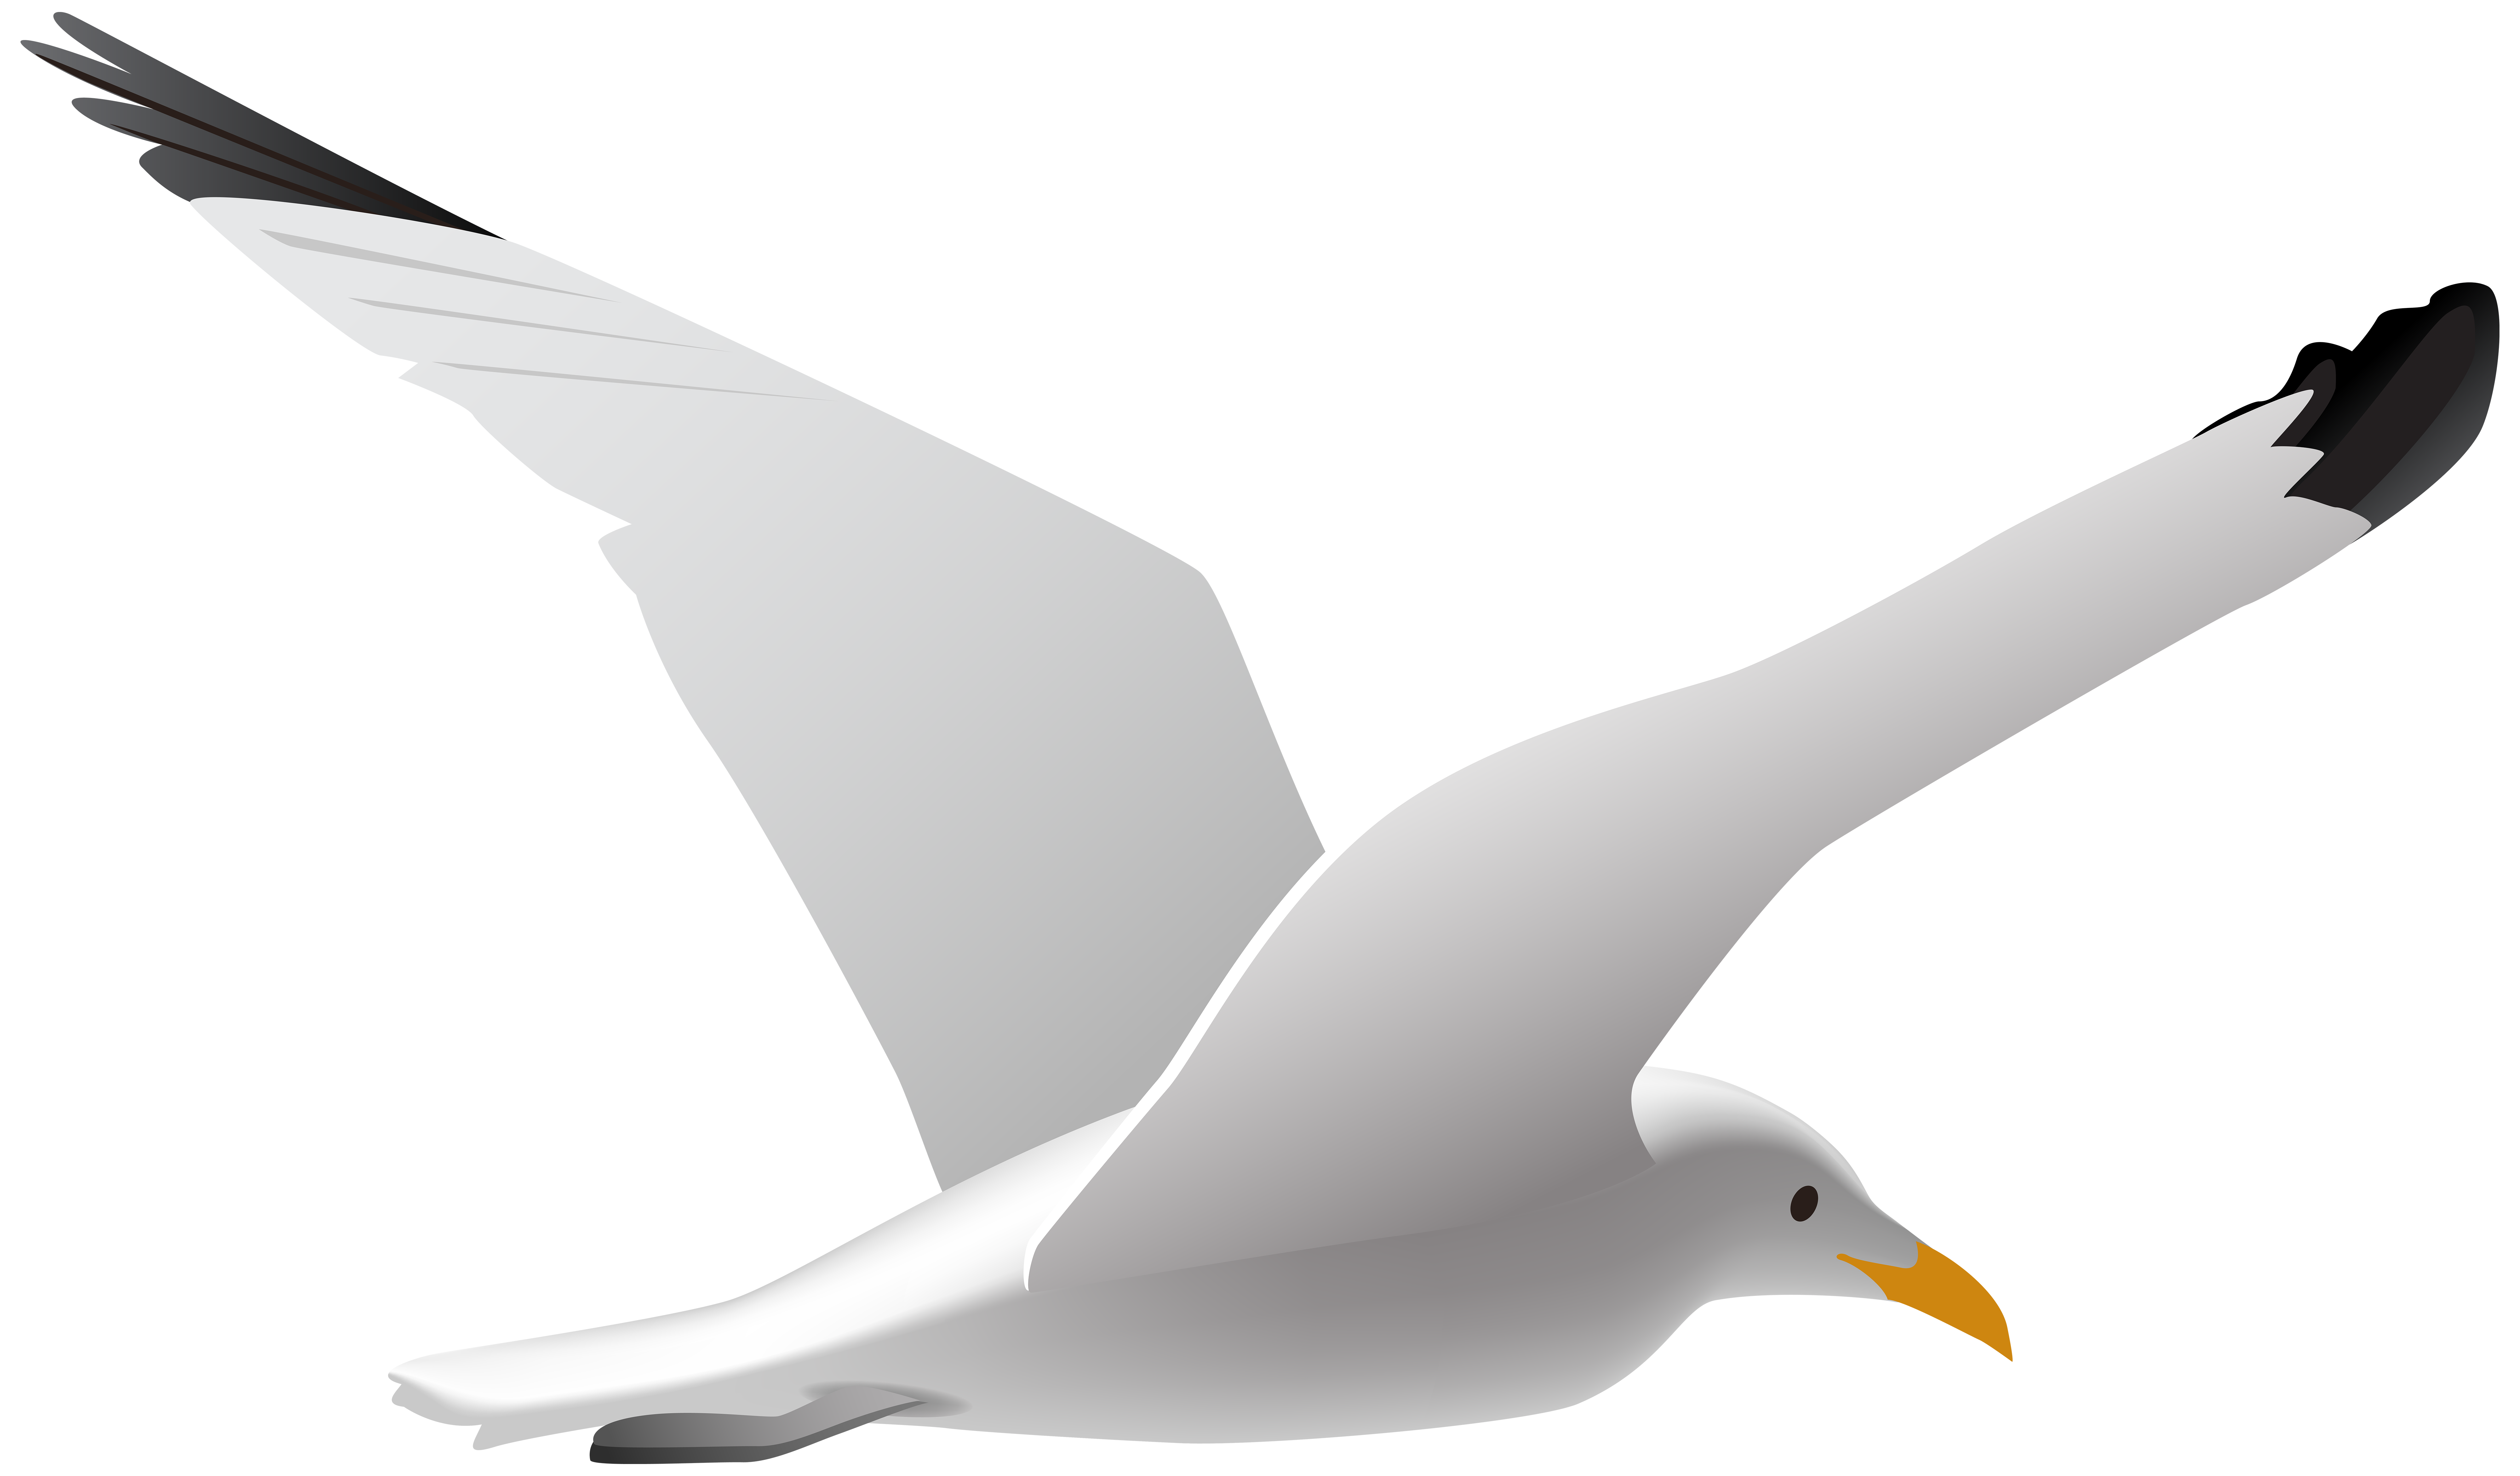 Png clip art image. Seagull clipart image library